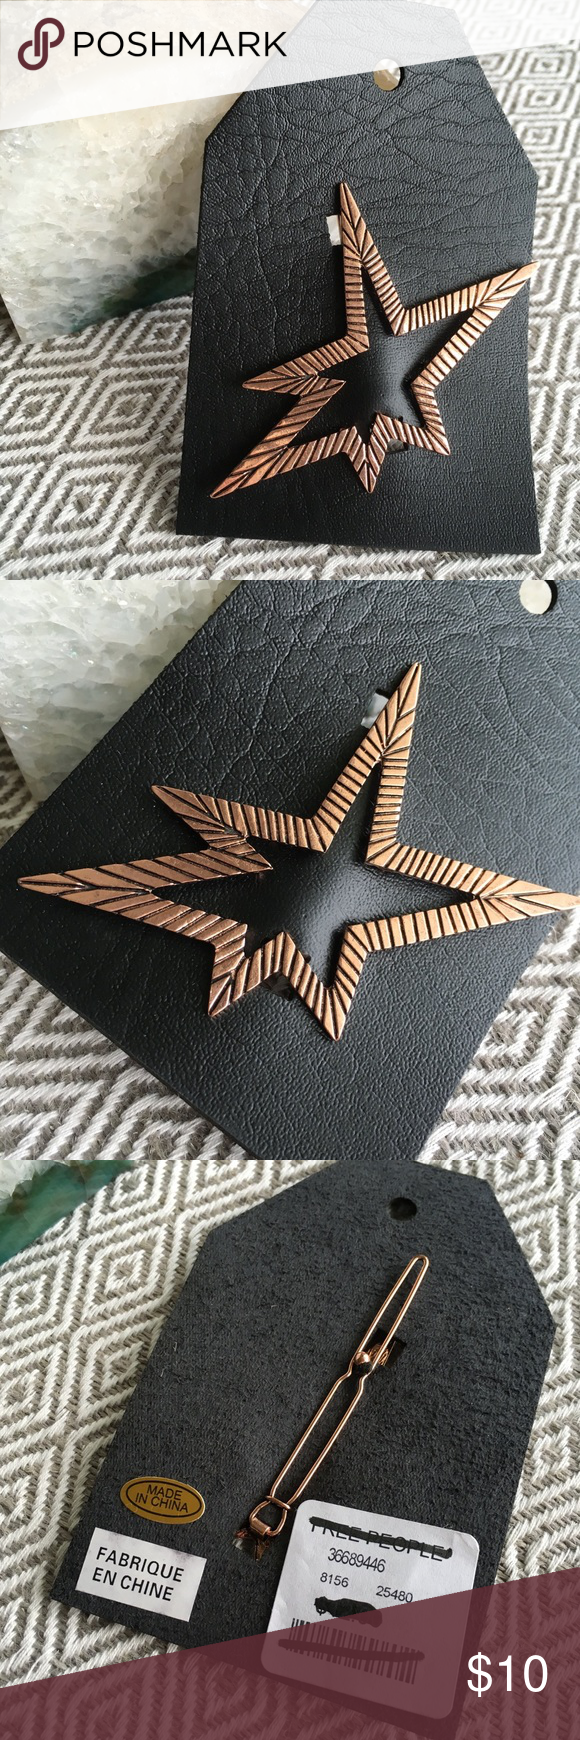 """Free People starburst hair clip Copper tone metal hair clip in unique starbust shape from Free People. Brand new, never used. Tag crossed through to prevent store returns. Two available. Price is for one. Measures just over 3"""" at longest part. Bundle for a better deal!         Reasonable offers welcome.🎀 No lowballing, please.❌ No trades or non-posh transactions!🚫 Bundle & save!💰 Free People Accessories Hair Accessories"""